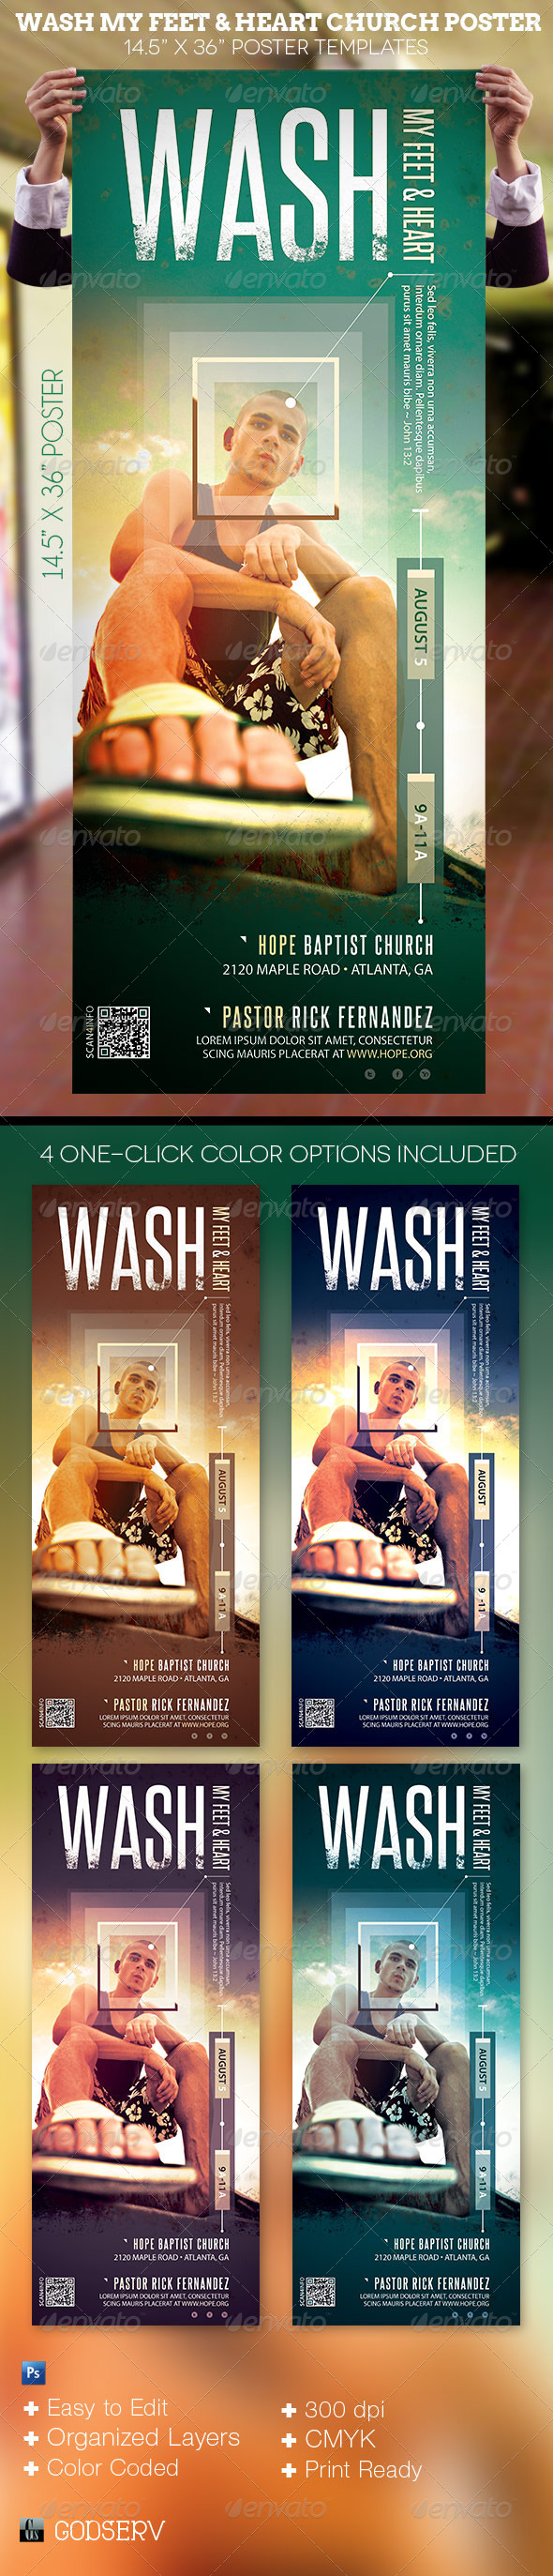 Wash Church Poster Template - Signage Print Templates